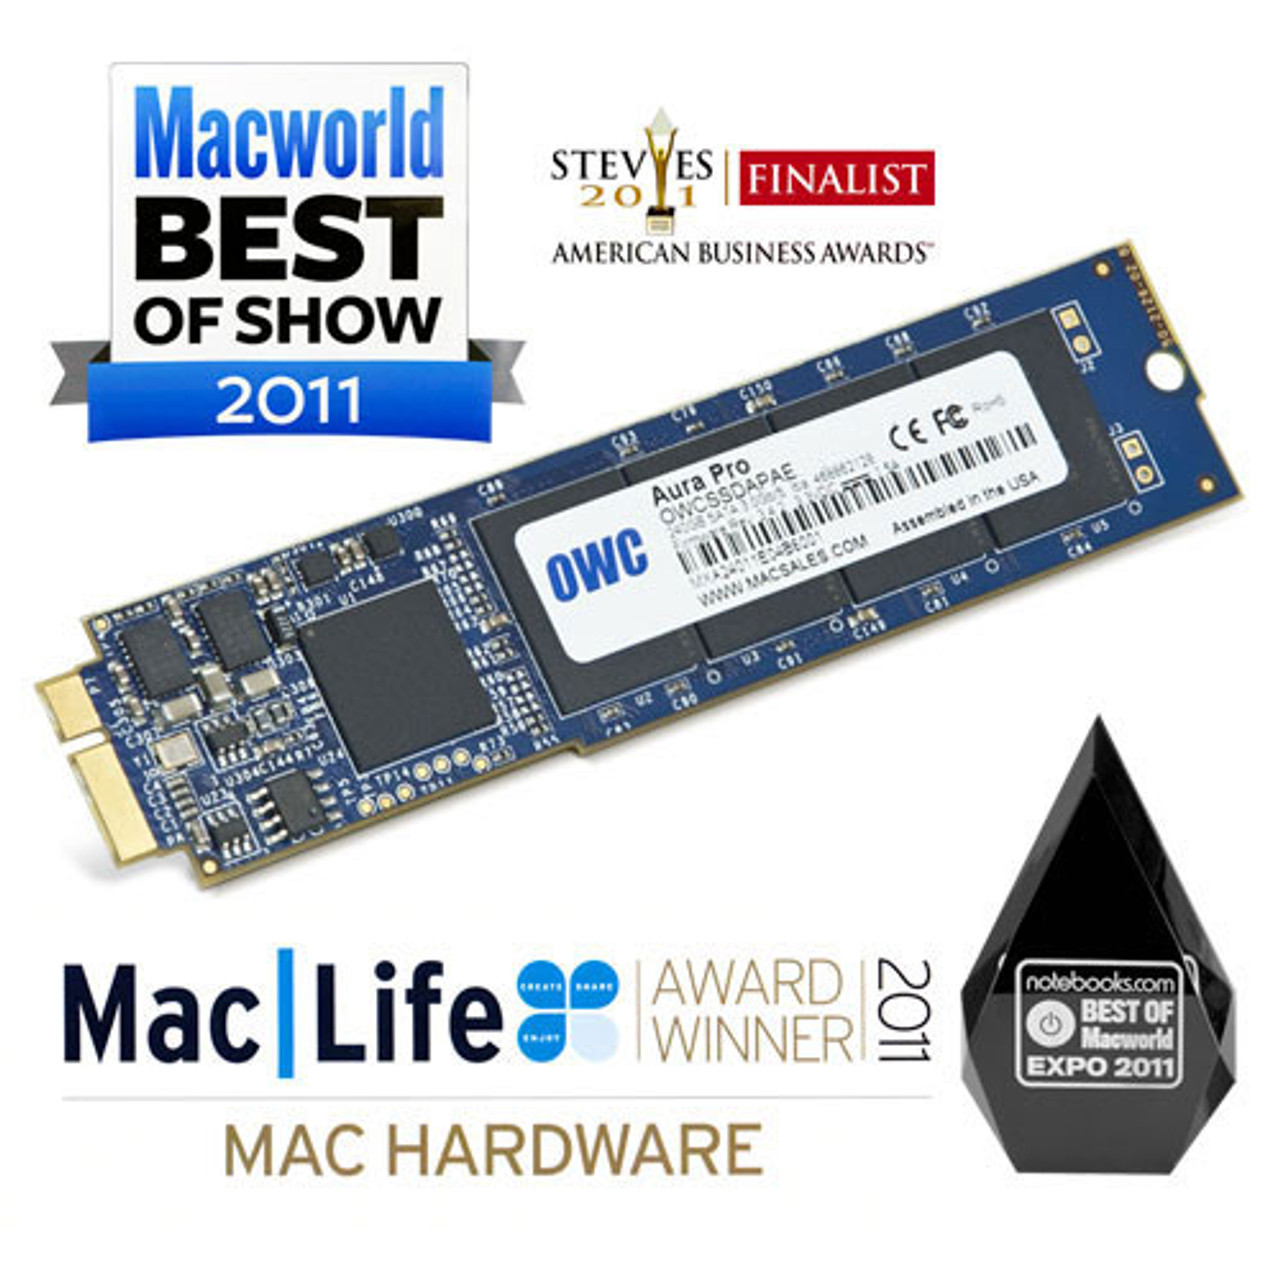 OWC 1TB Aura Pro 6G Solid State Drive with upgrade kit for MacBook Air (Late 2010 - Mid 2011)